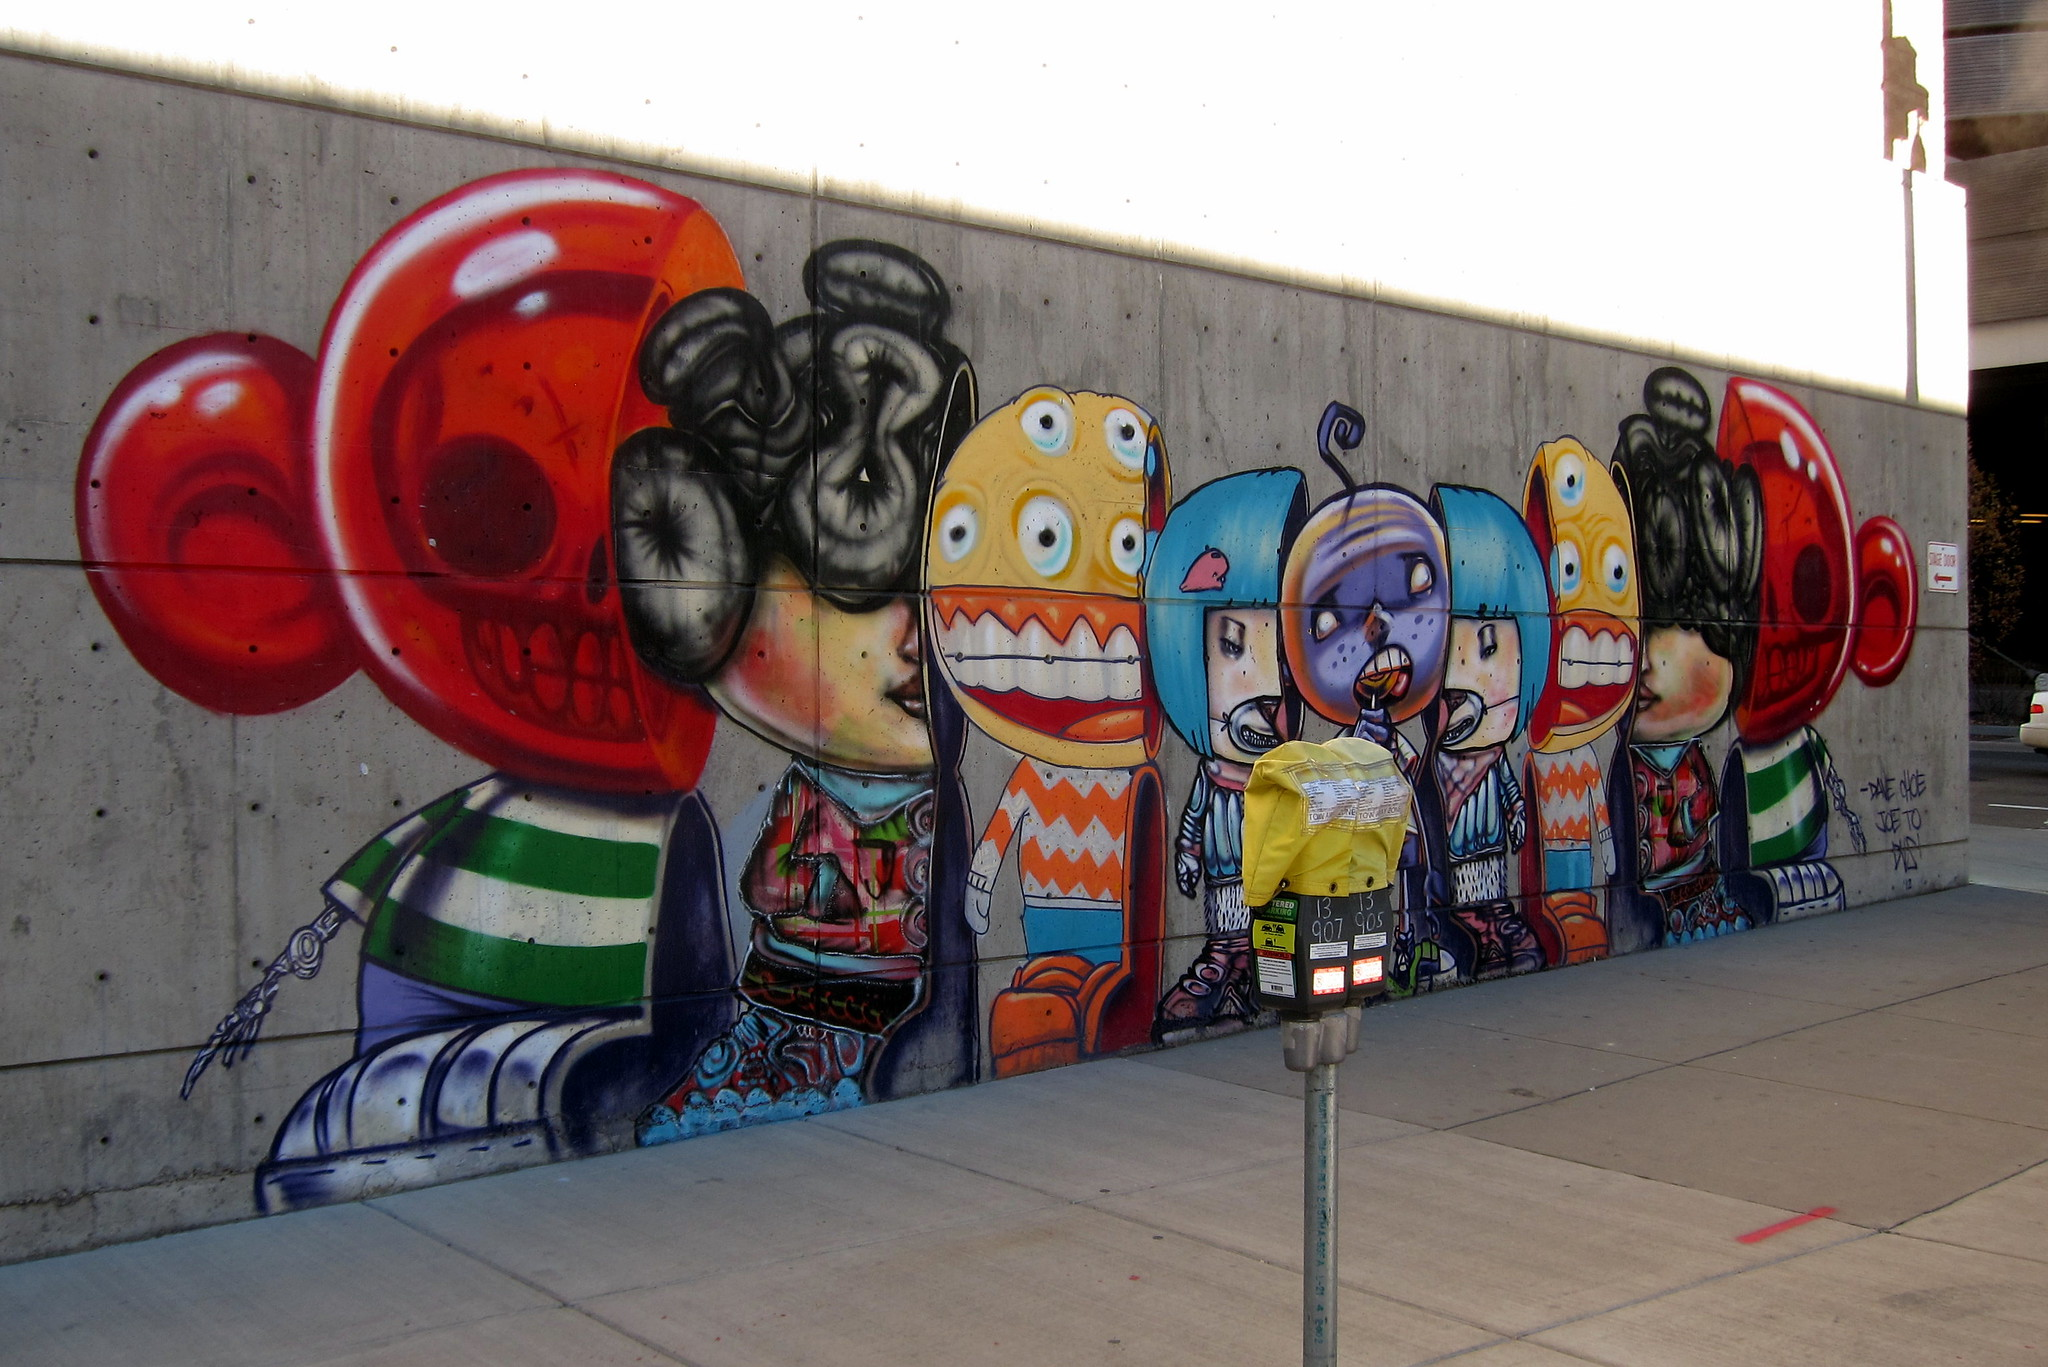 Denver cbd mural by david choe dvs 1 and joseph to for David choe mural